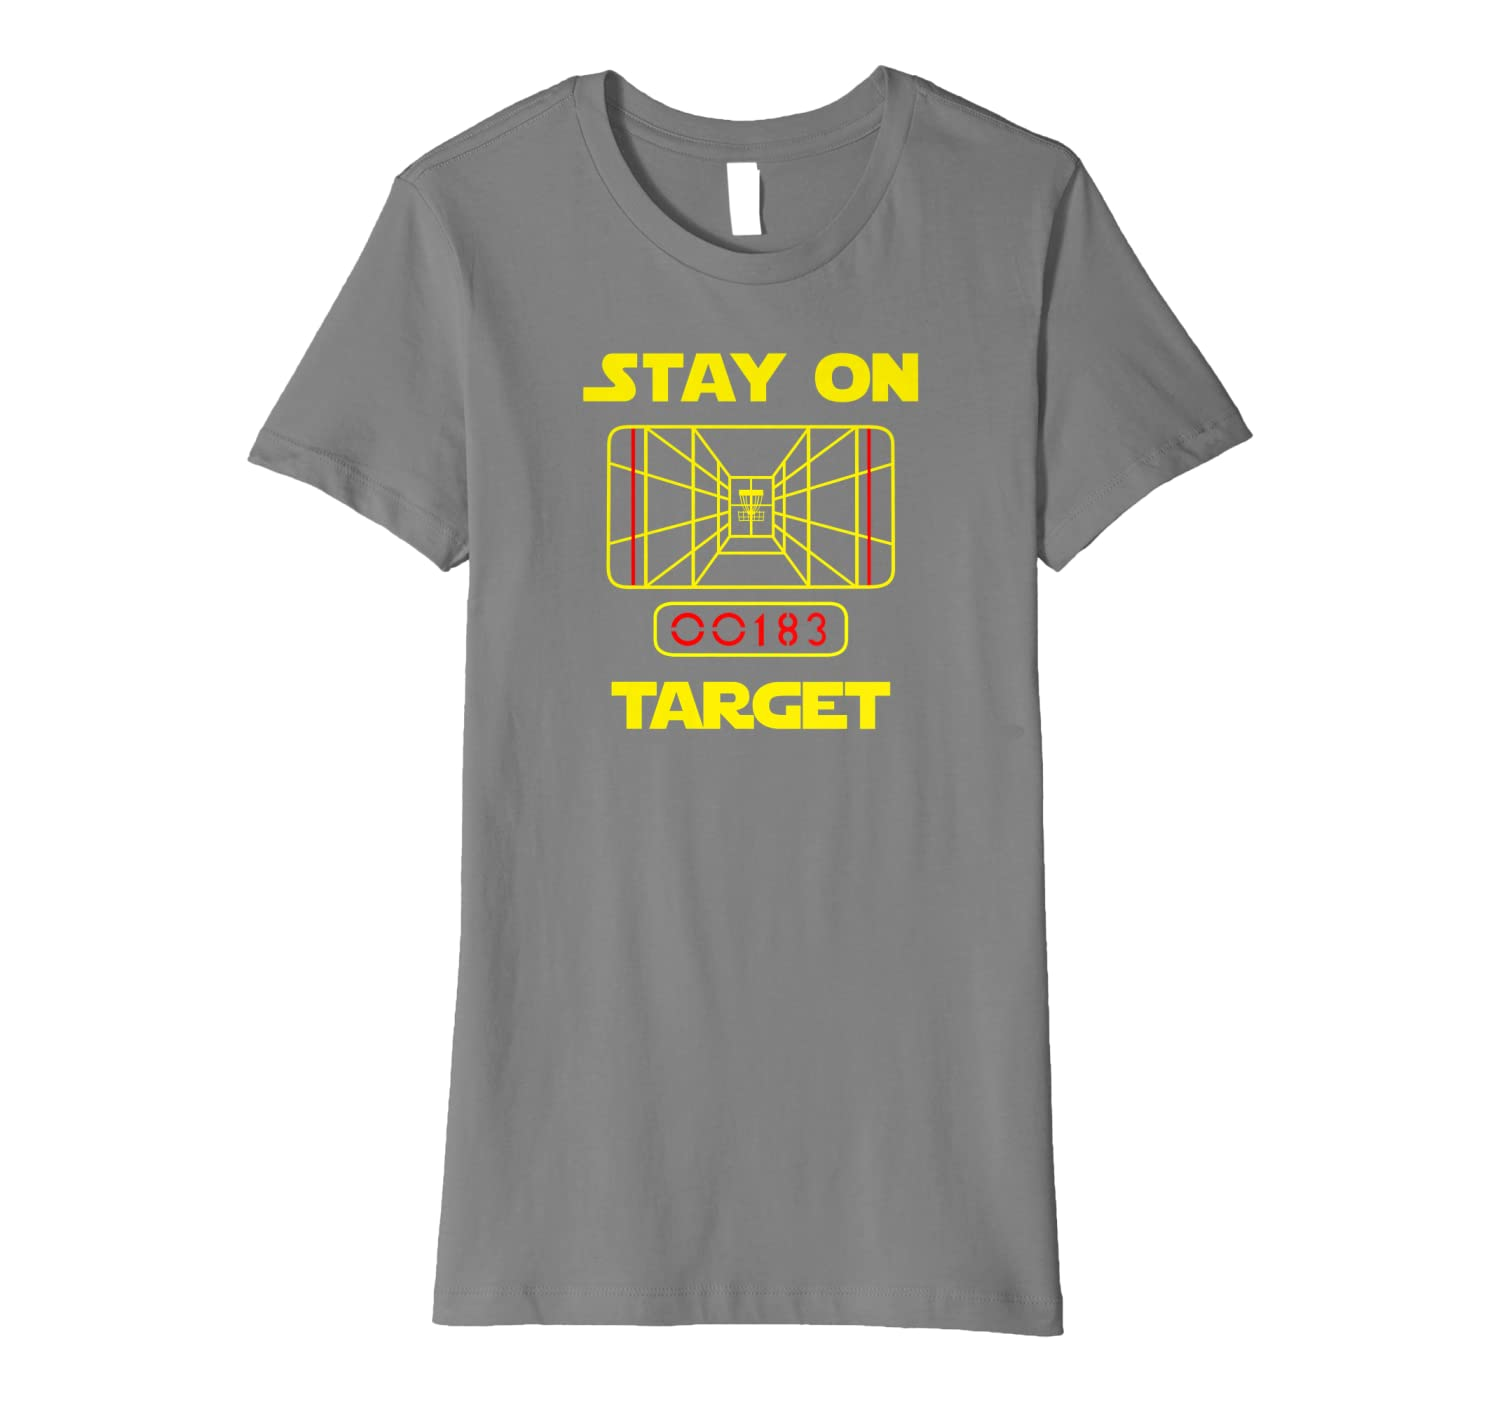 52906f5d2 Amazon.com: STAY ON TARGET- Disc Golf T-Shirt: Clothing